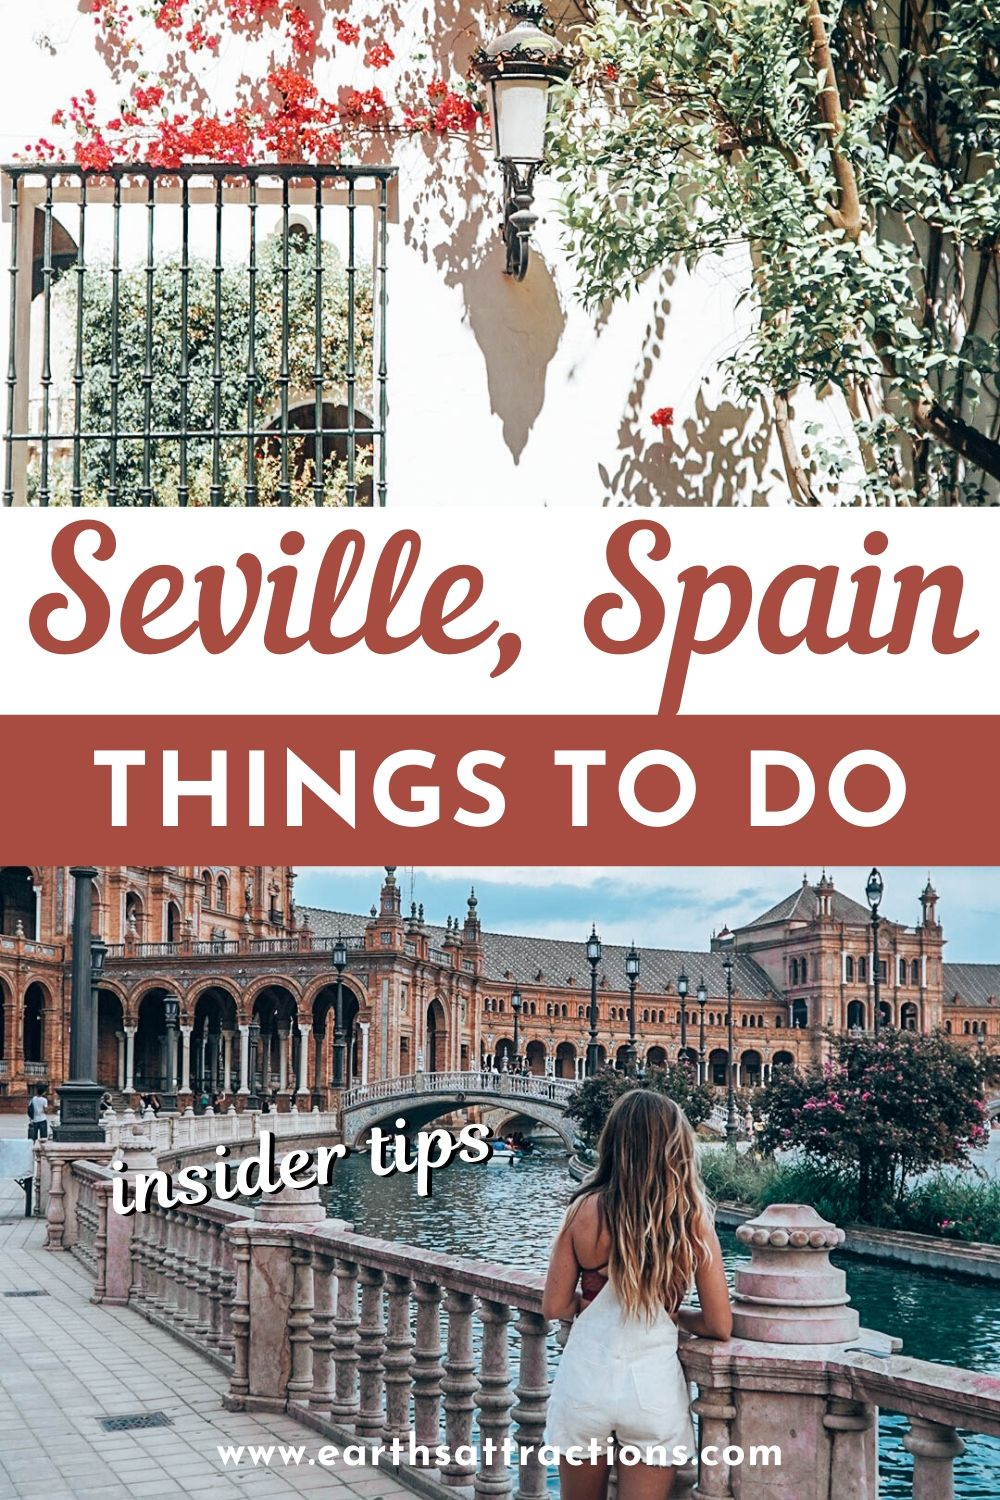 Things to do in Seville, Spain. Discover what to do in Seville on your first trip to Seville. The best places to visit in Seville are included, as well as cool restaurants in Seville and awesome hotels in Seville. Read this Seville blog now! #seville #spain #sevilleguide #travelguide #traveldestinations #europe #earthsattractions #sefillethingstodo